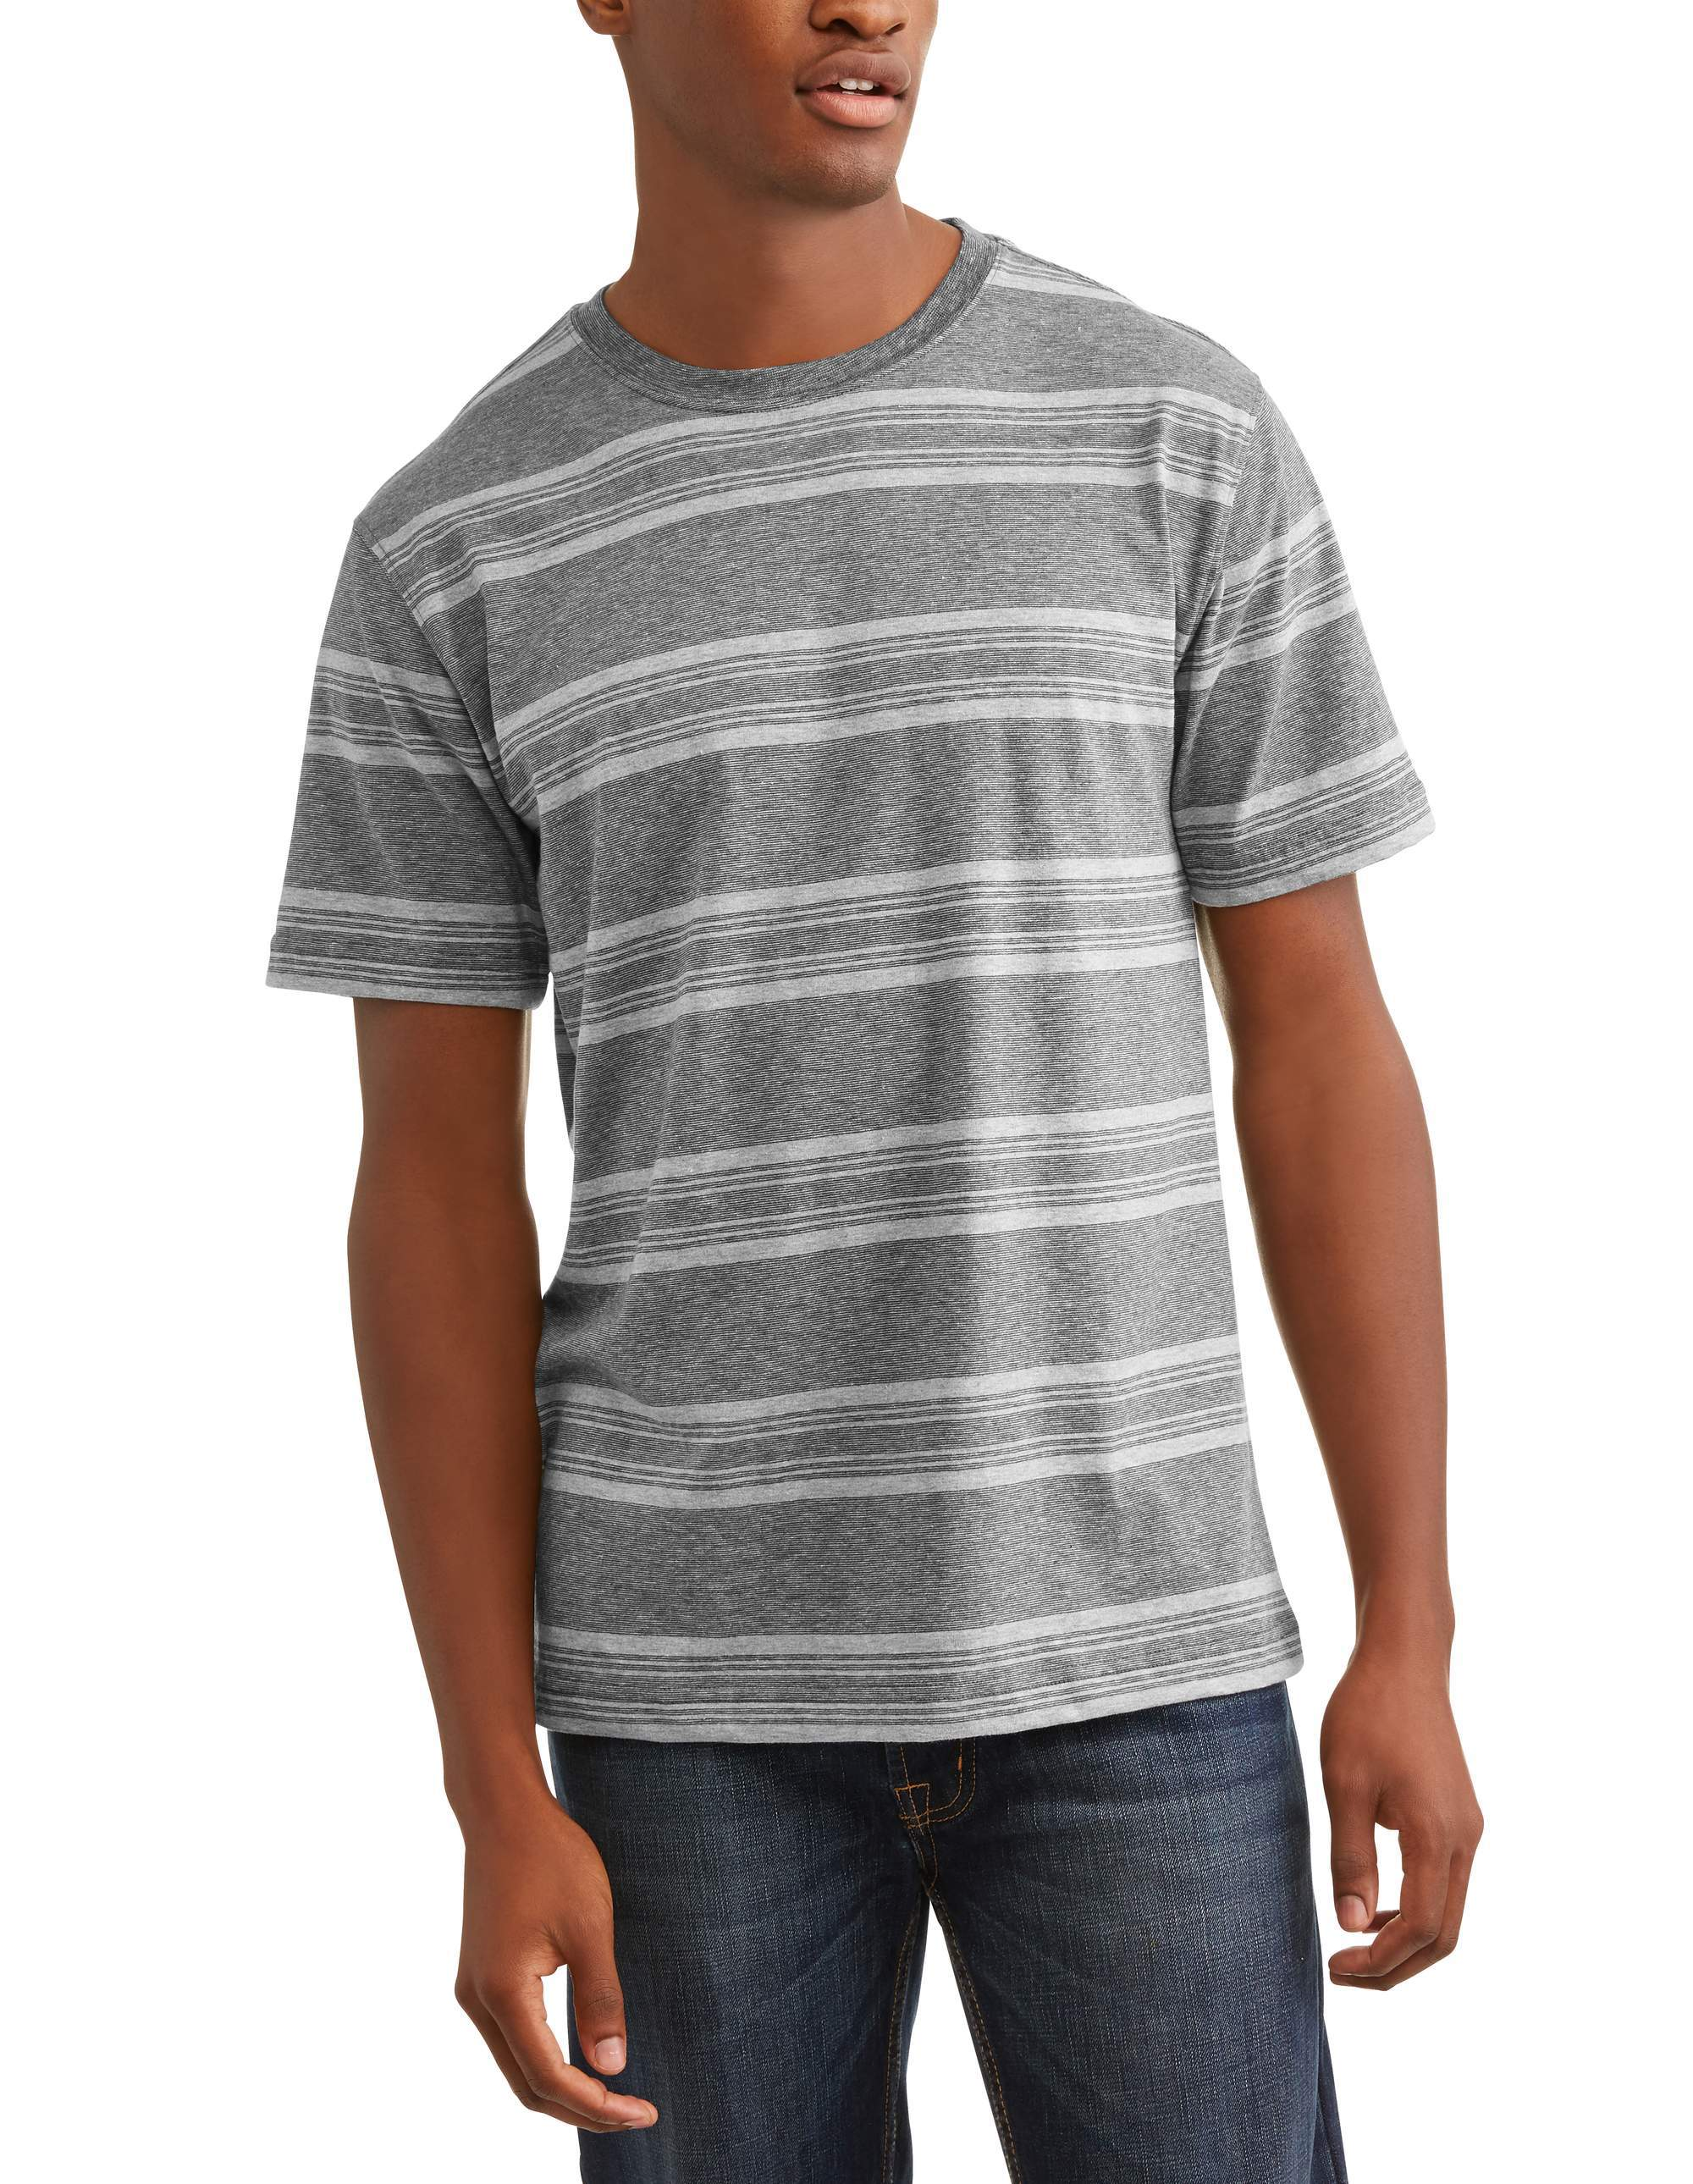 Men's and Big and Tall Men's Stripe Tee, up to size 3XLT